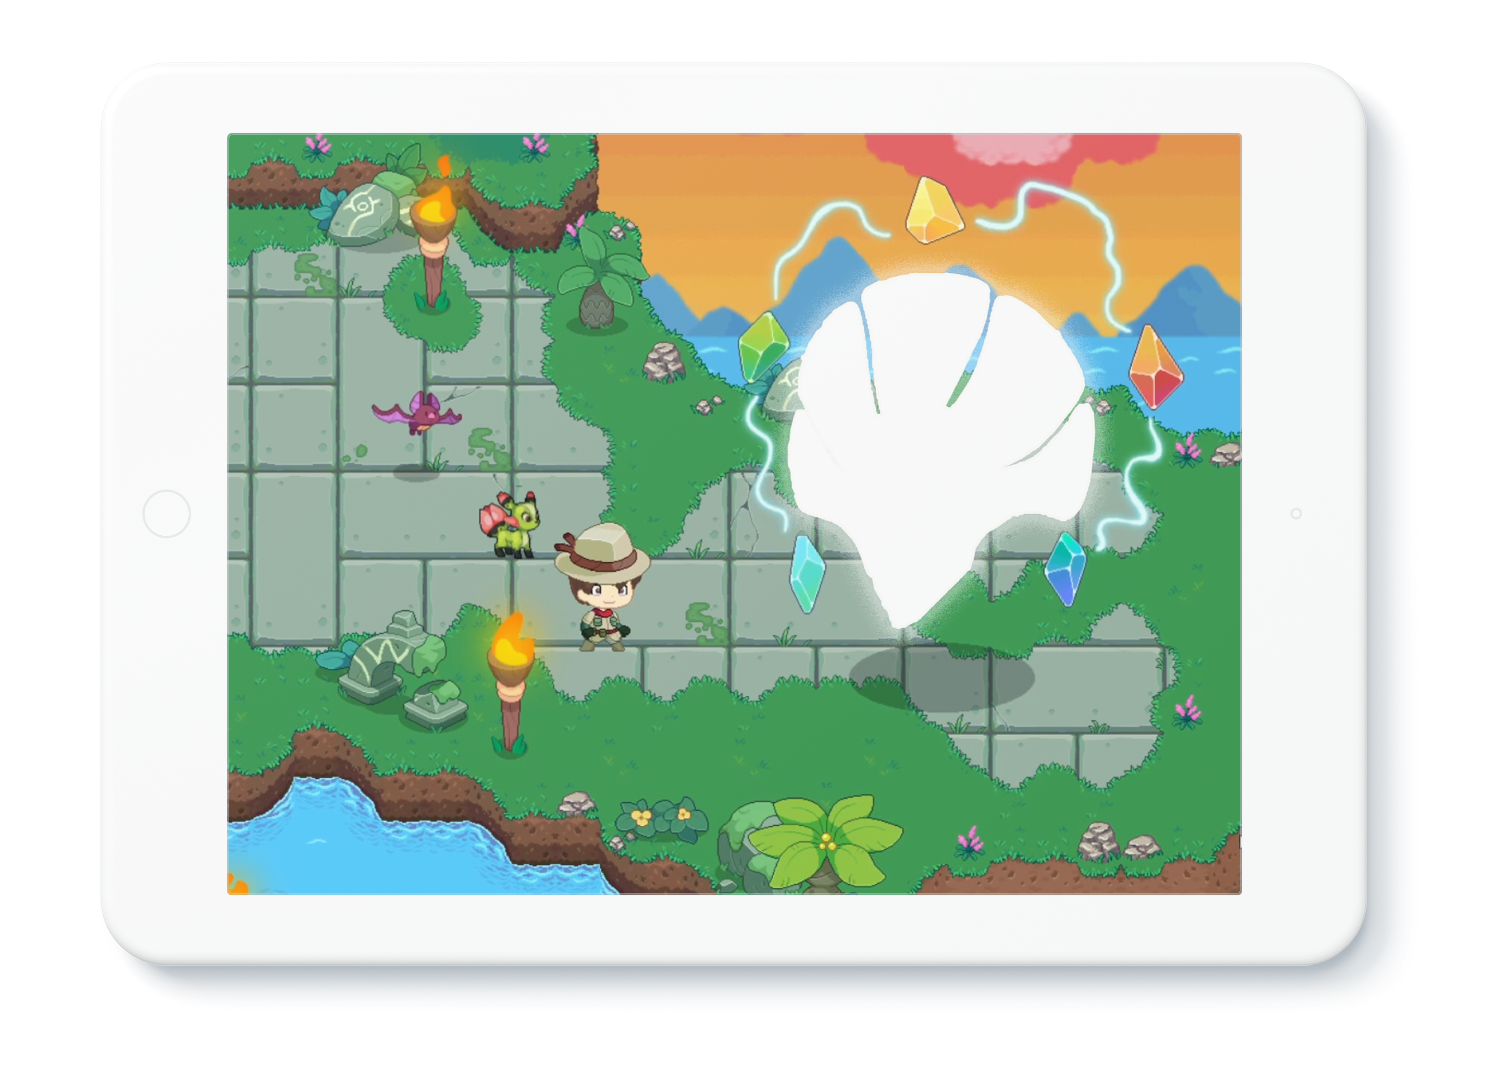 Illustration of tablet device with the Harmony Island Ancient battle featured on the screen.